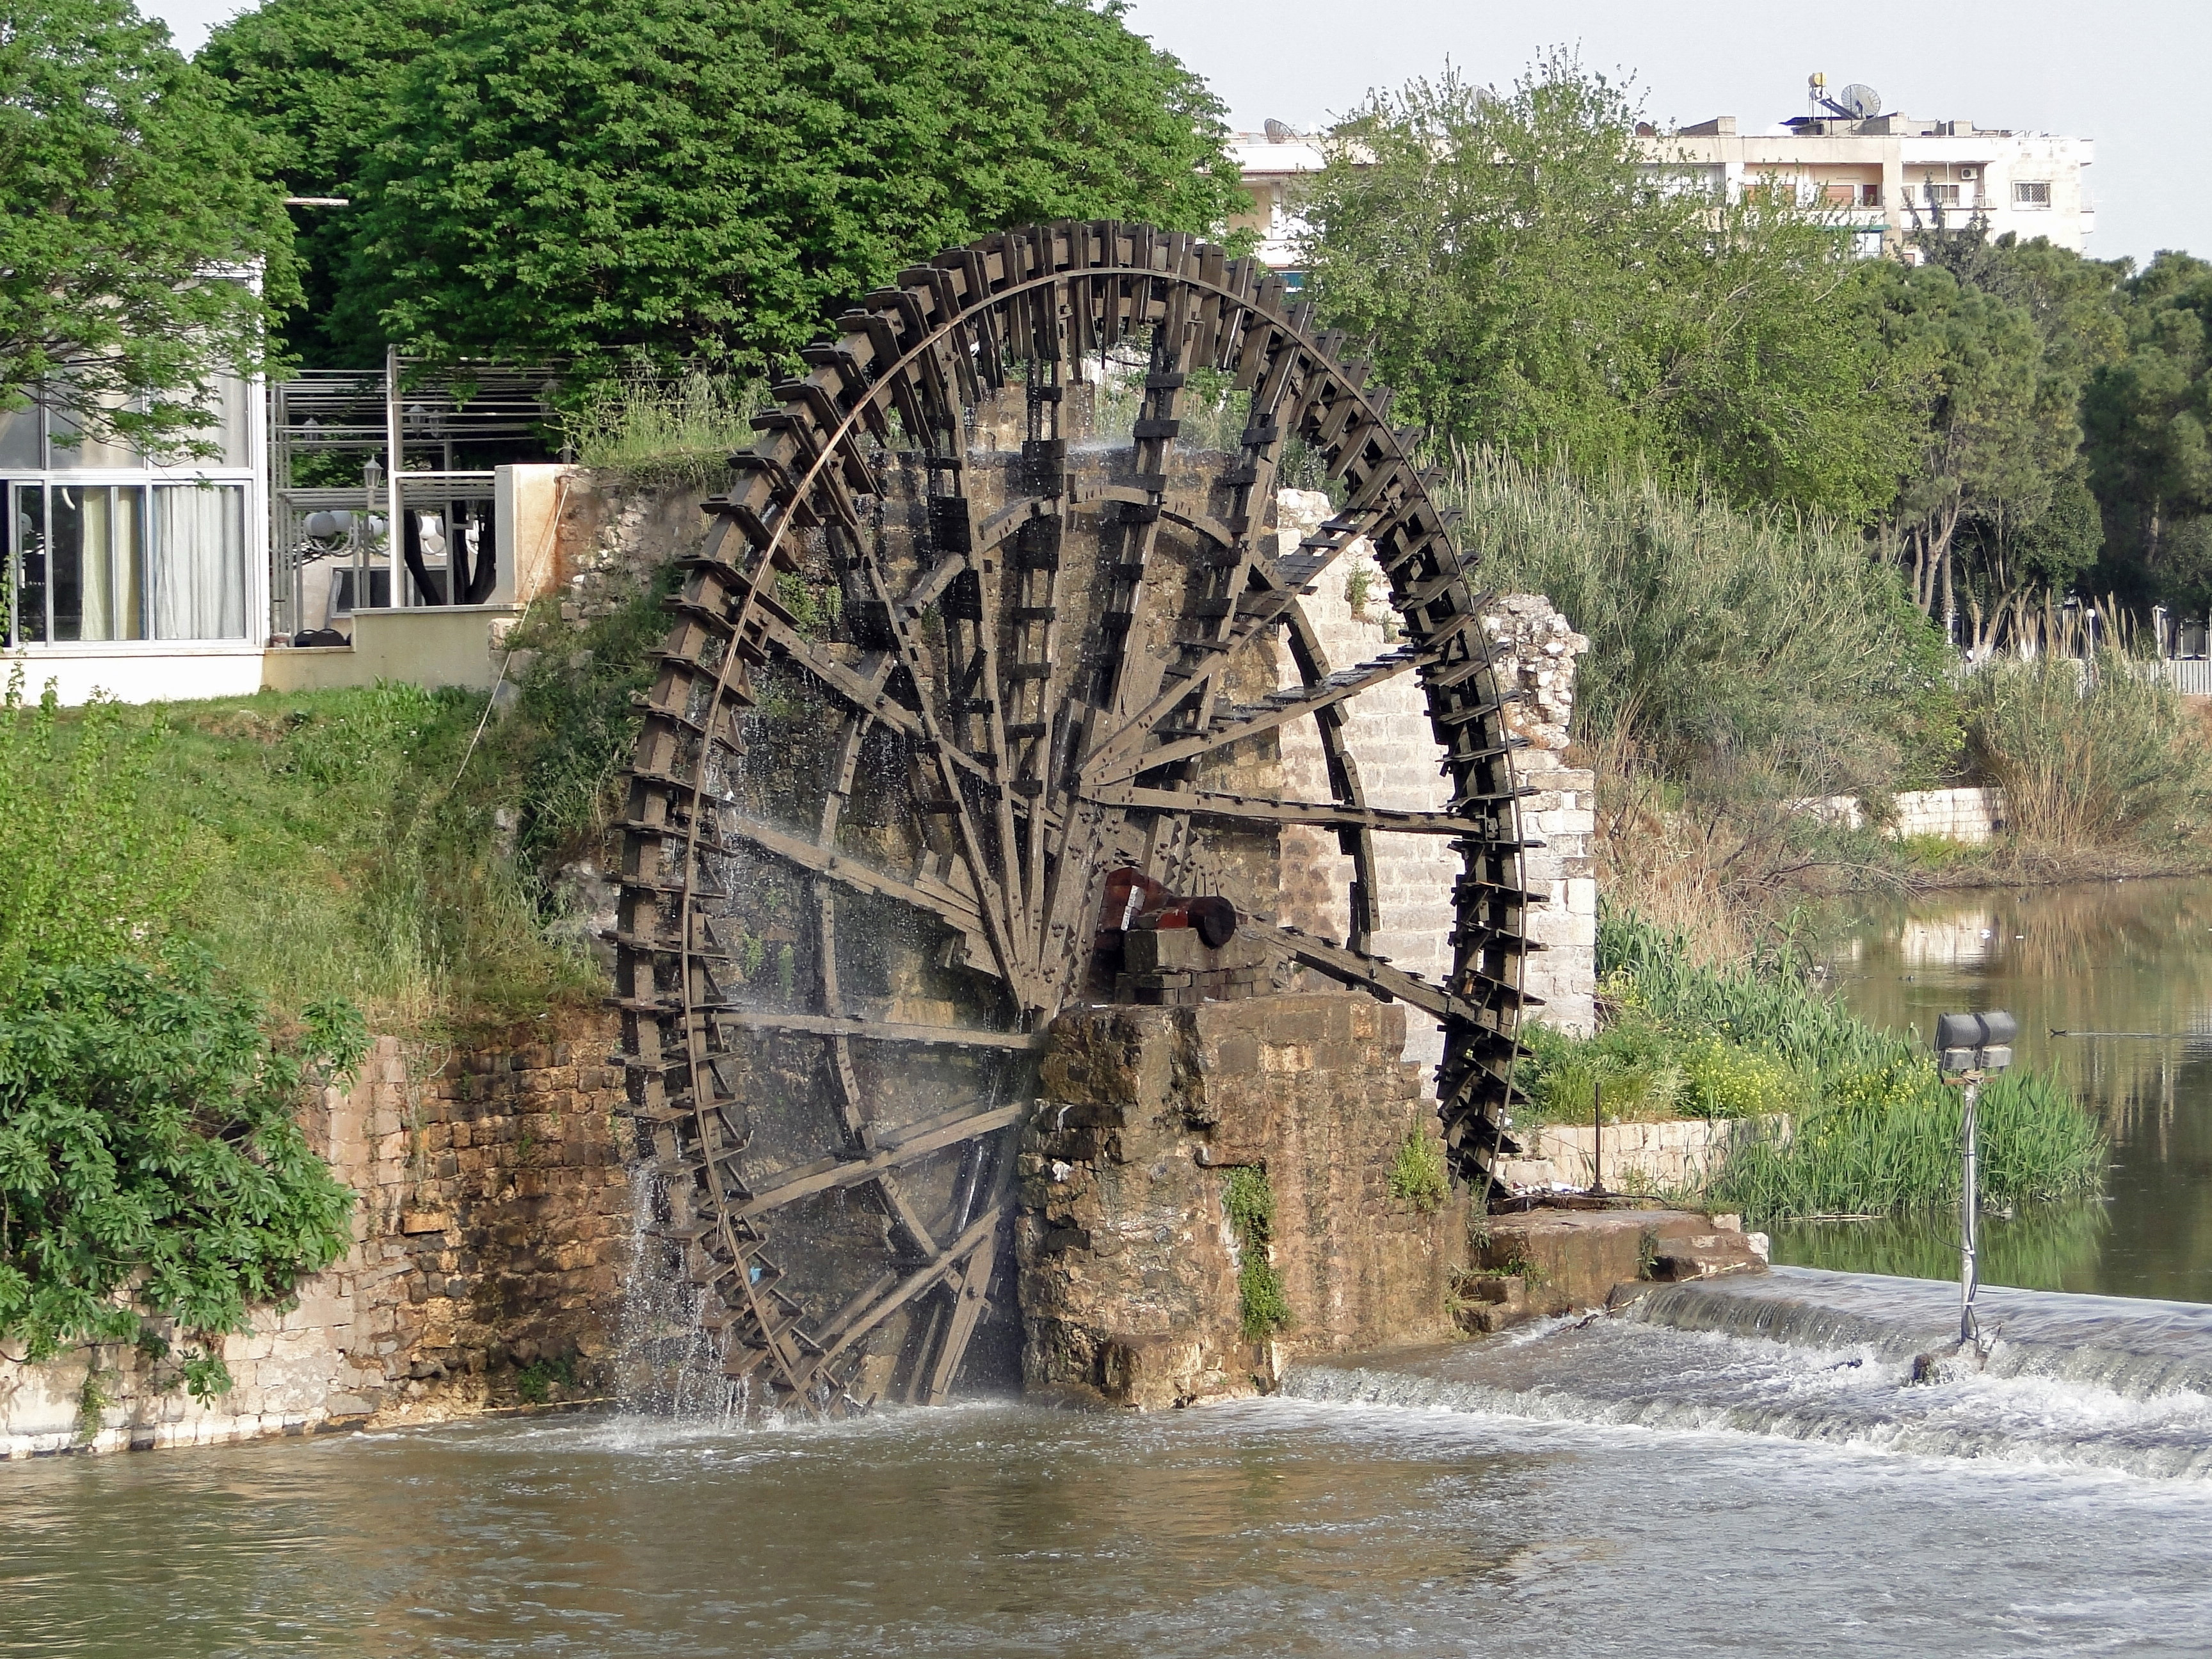 hama water wheels Hama is famous for these water wheels, initially built by the romans in what must be one of the most impressive engineering feats i've seen in a while the current turns the wheels which contain small buckets which fill up with water and then spill out over to the aqueduct to its side.